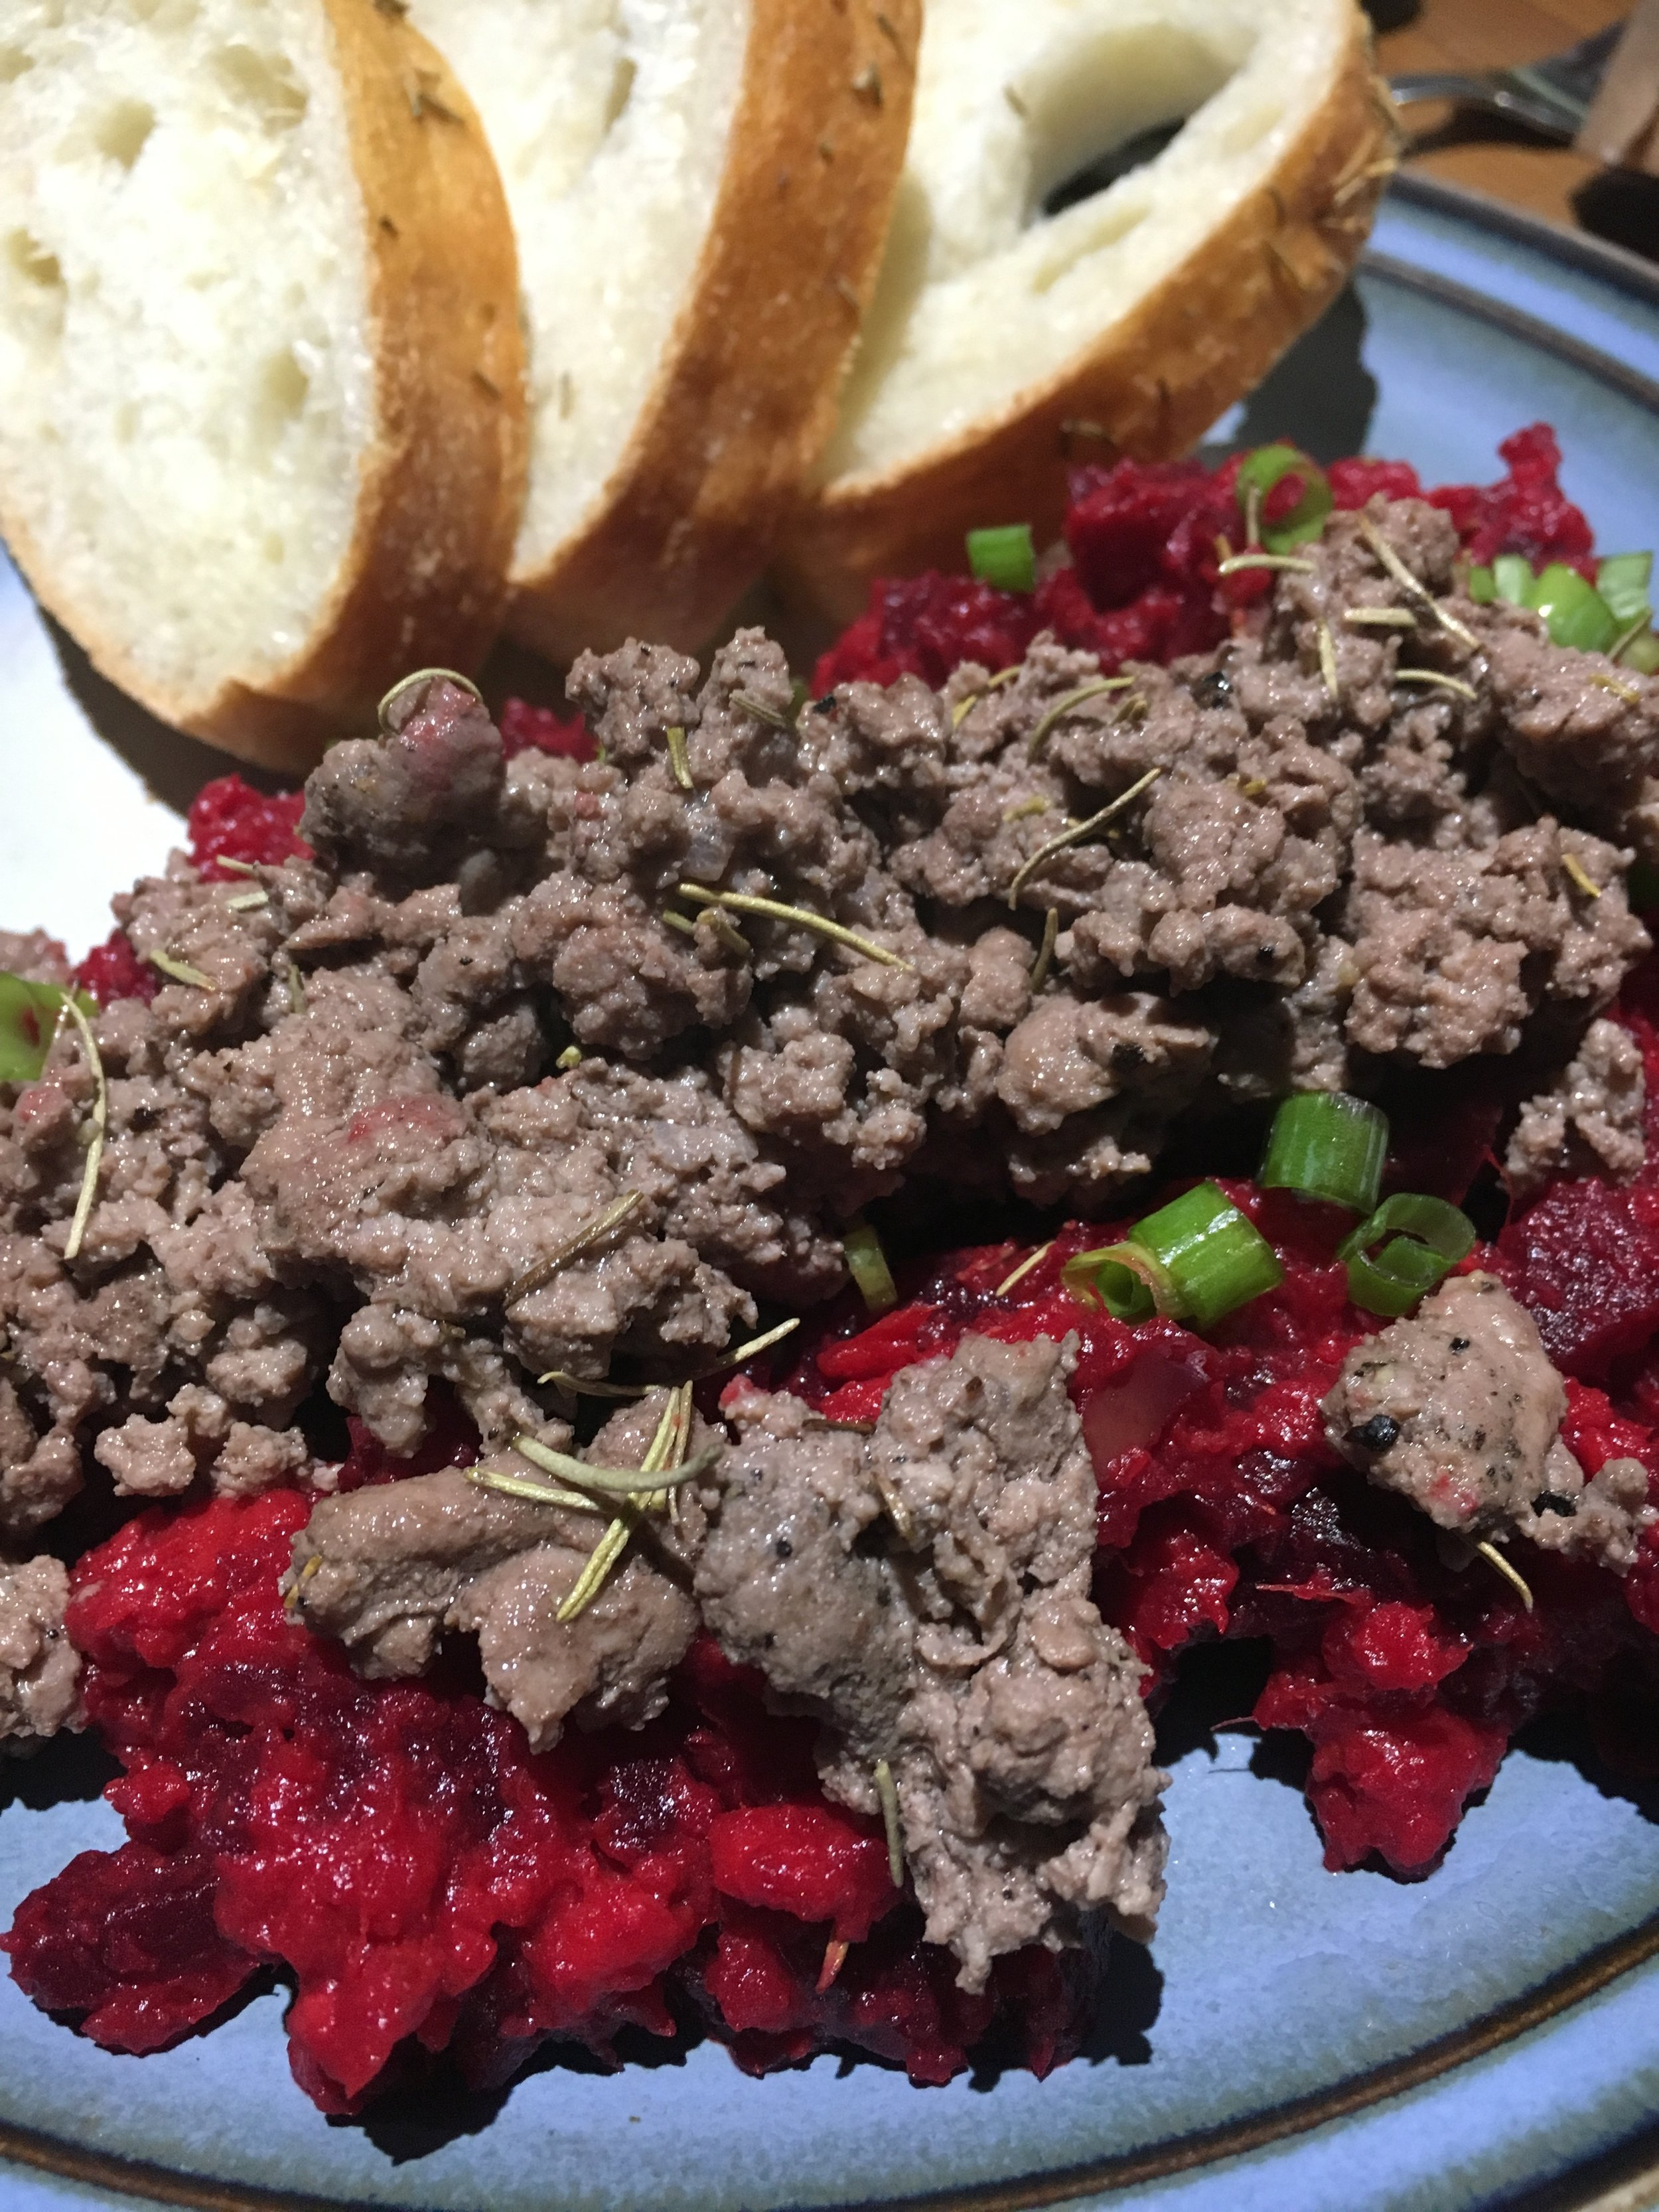 Mashed Beets, Ground Lamb & Sliced Bread